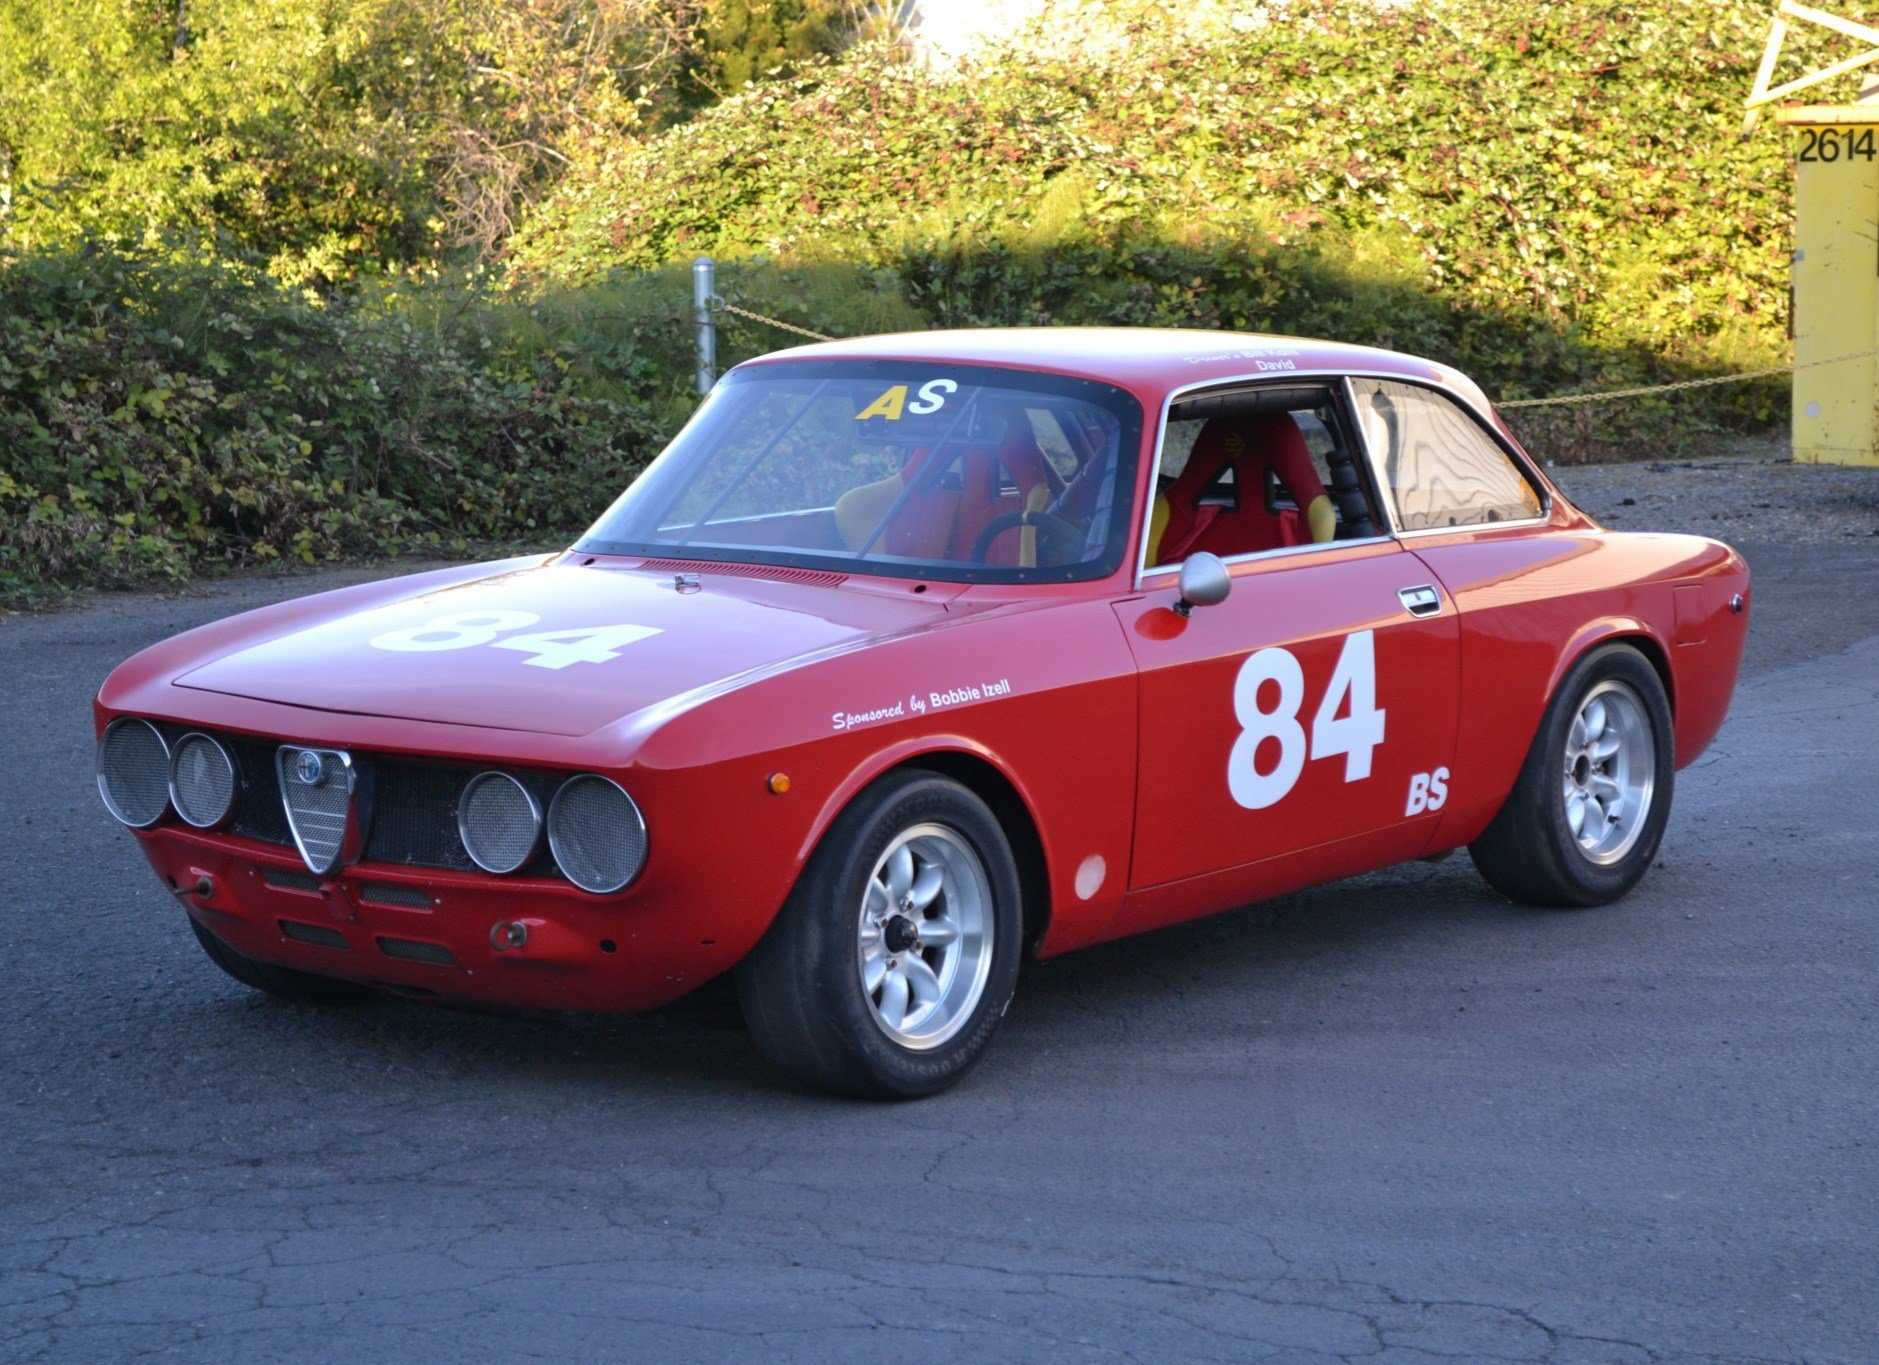 Latest 1969 Alfa Romeo Gtv Race Car For Sale On Bat Auctions Free Download